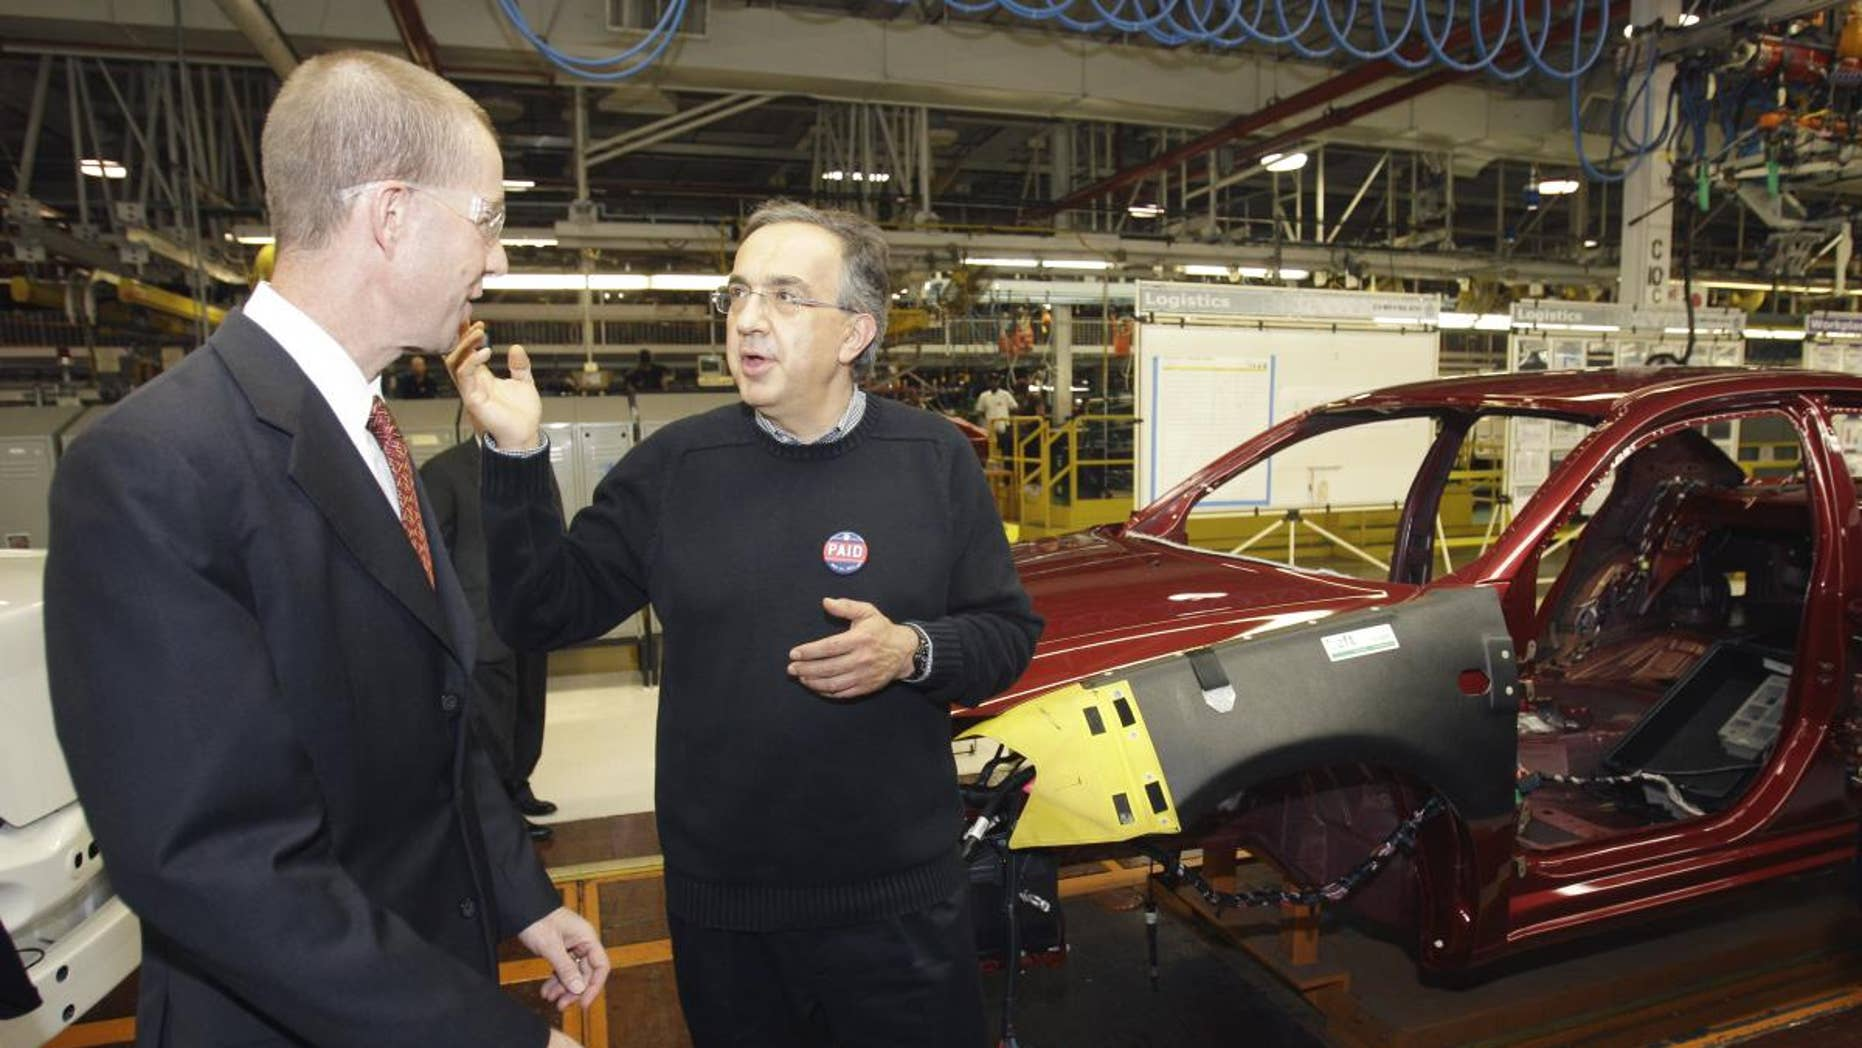 Chrysler Group CEO Sergio Marchionne, right, and Ron Bloom, assistant to President Obama for Manufacturing Policy walk on the assembly line at the Sterling Heights Assembly Plant in Sterling Heights, Mich., Tuesday, May 24, 2011. Marchionne acknowledged and expressed gratitude for the financial support from the U.S. and Canadian governments. (AP Photo/Carlos Osorio)